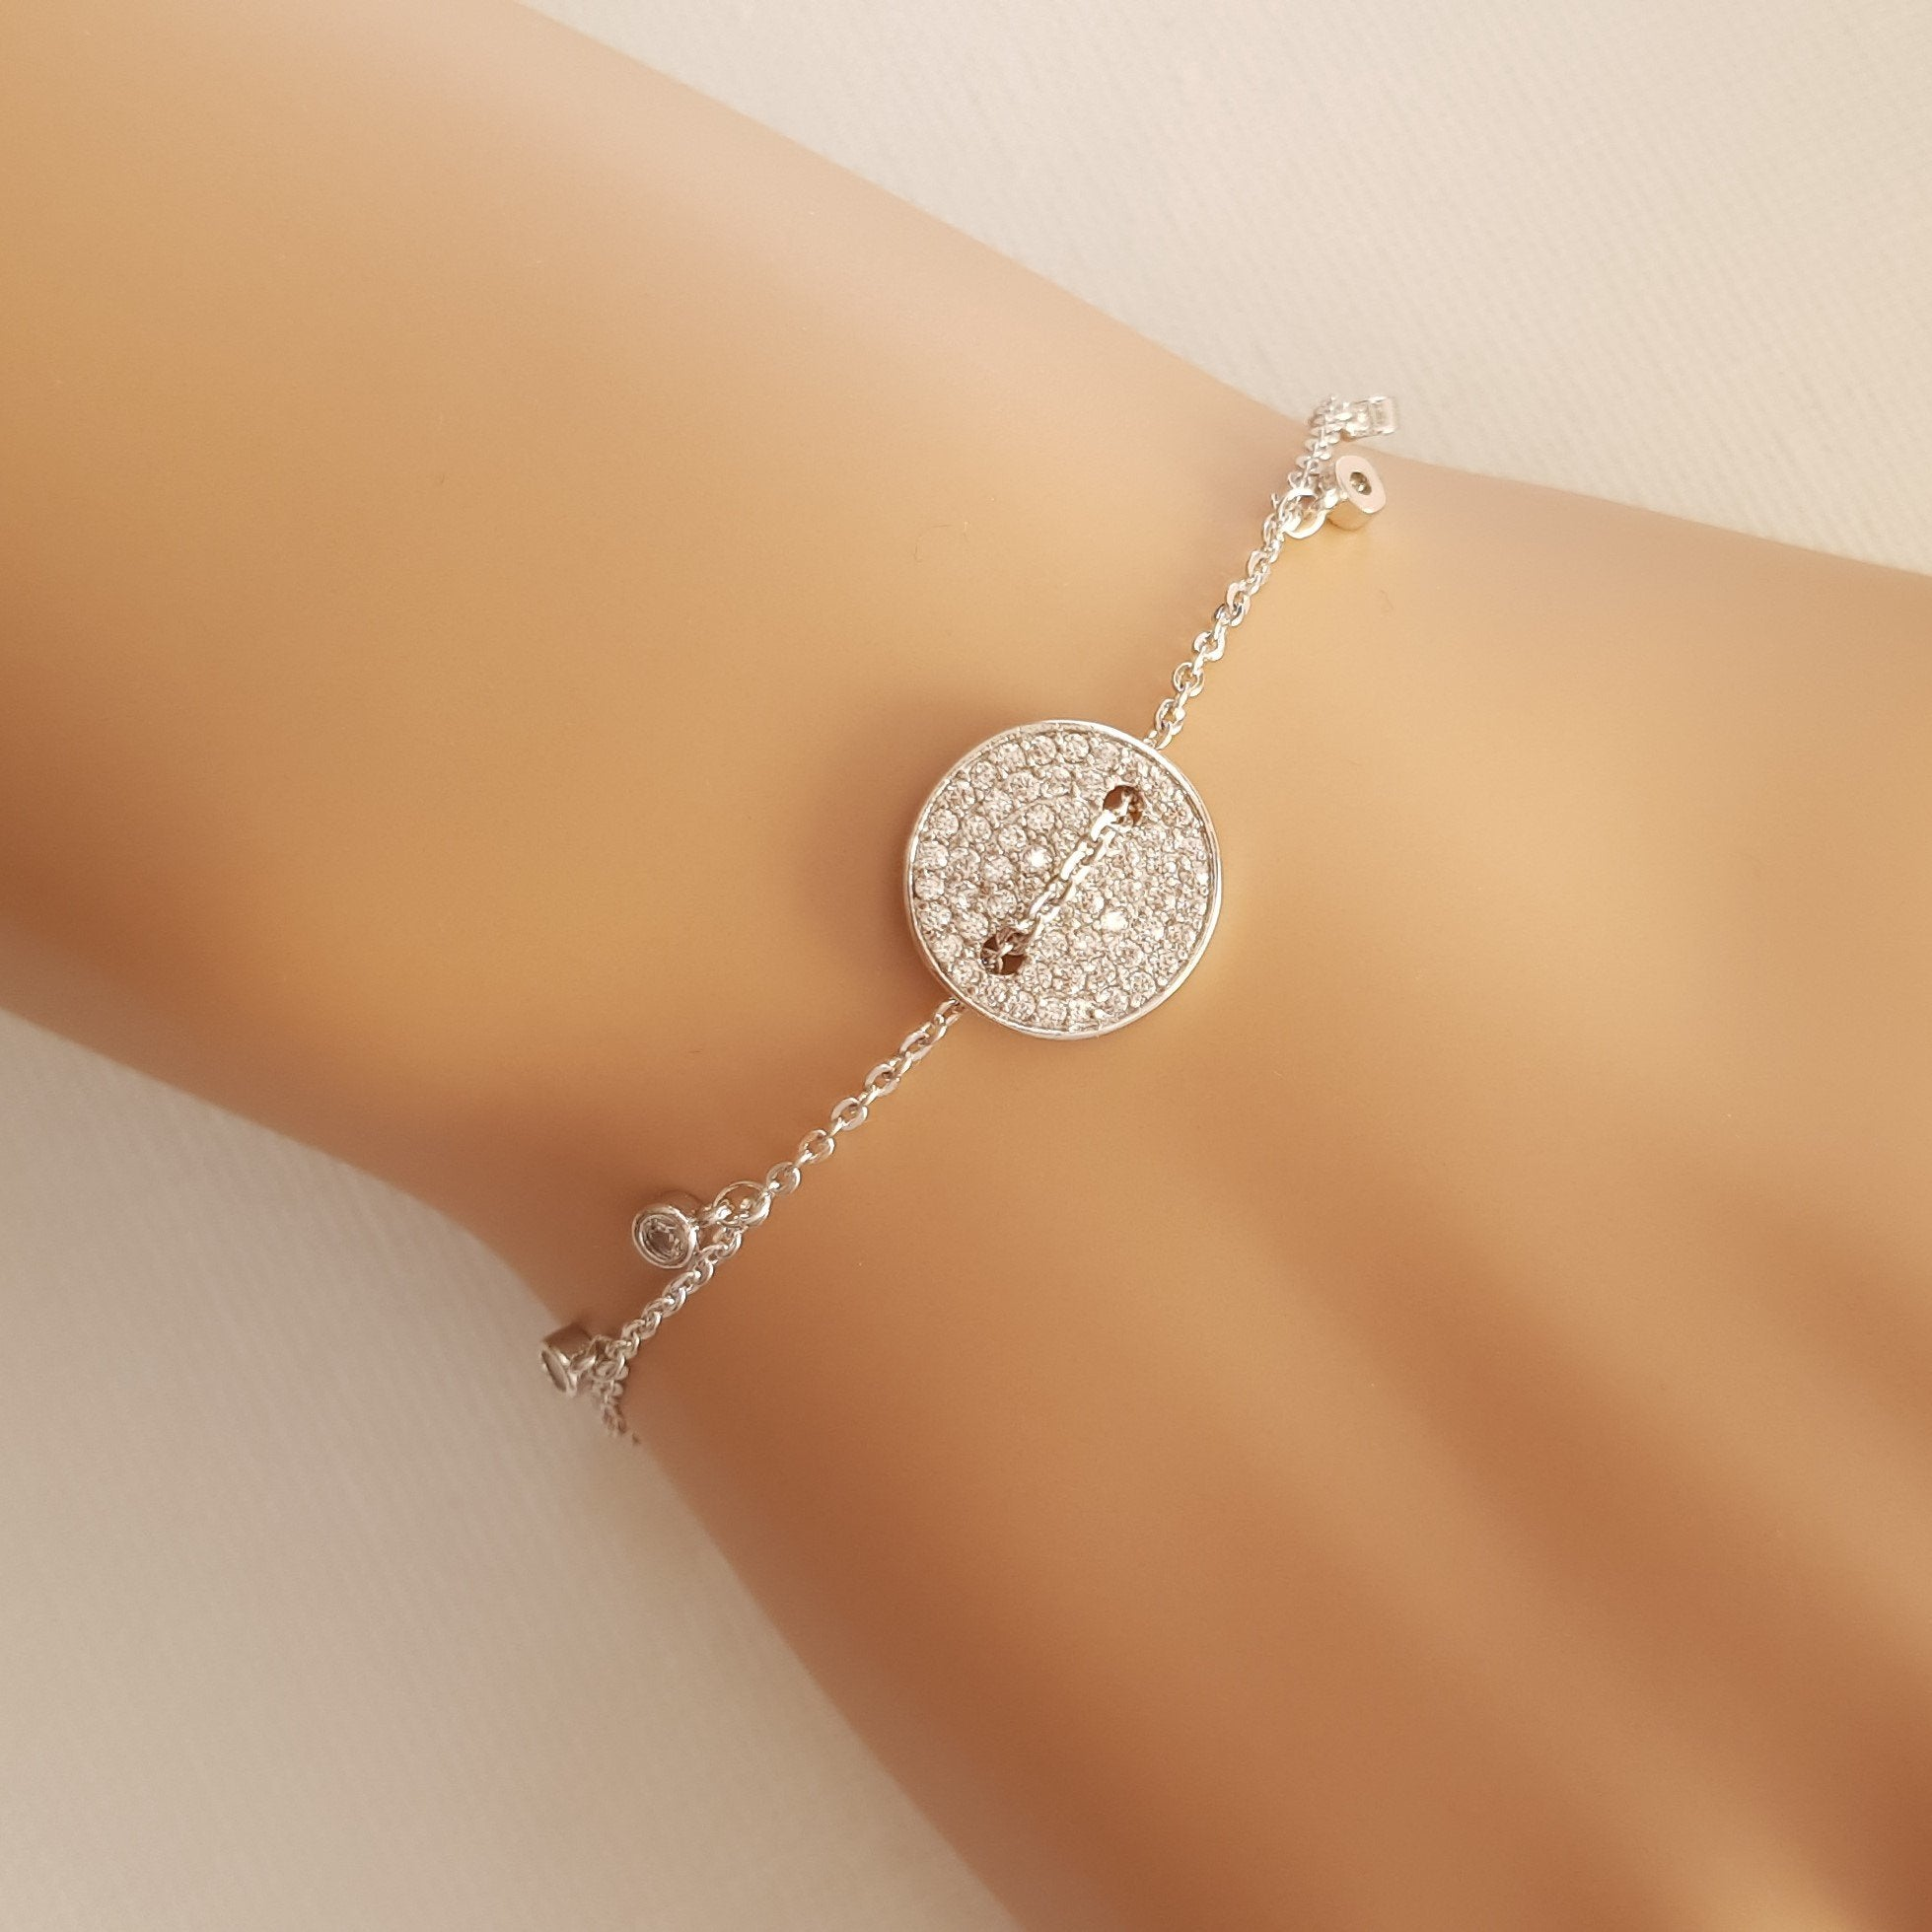 Chain Charm Silver Bracelet-Beatrice